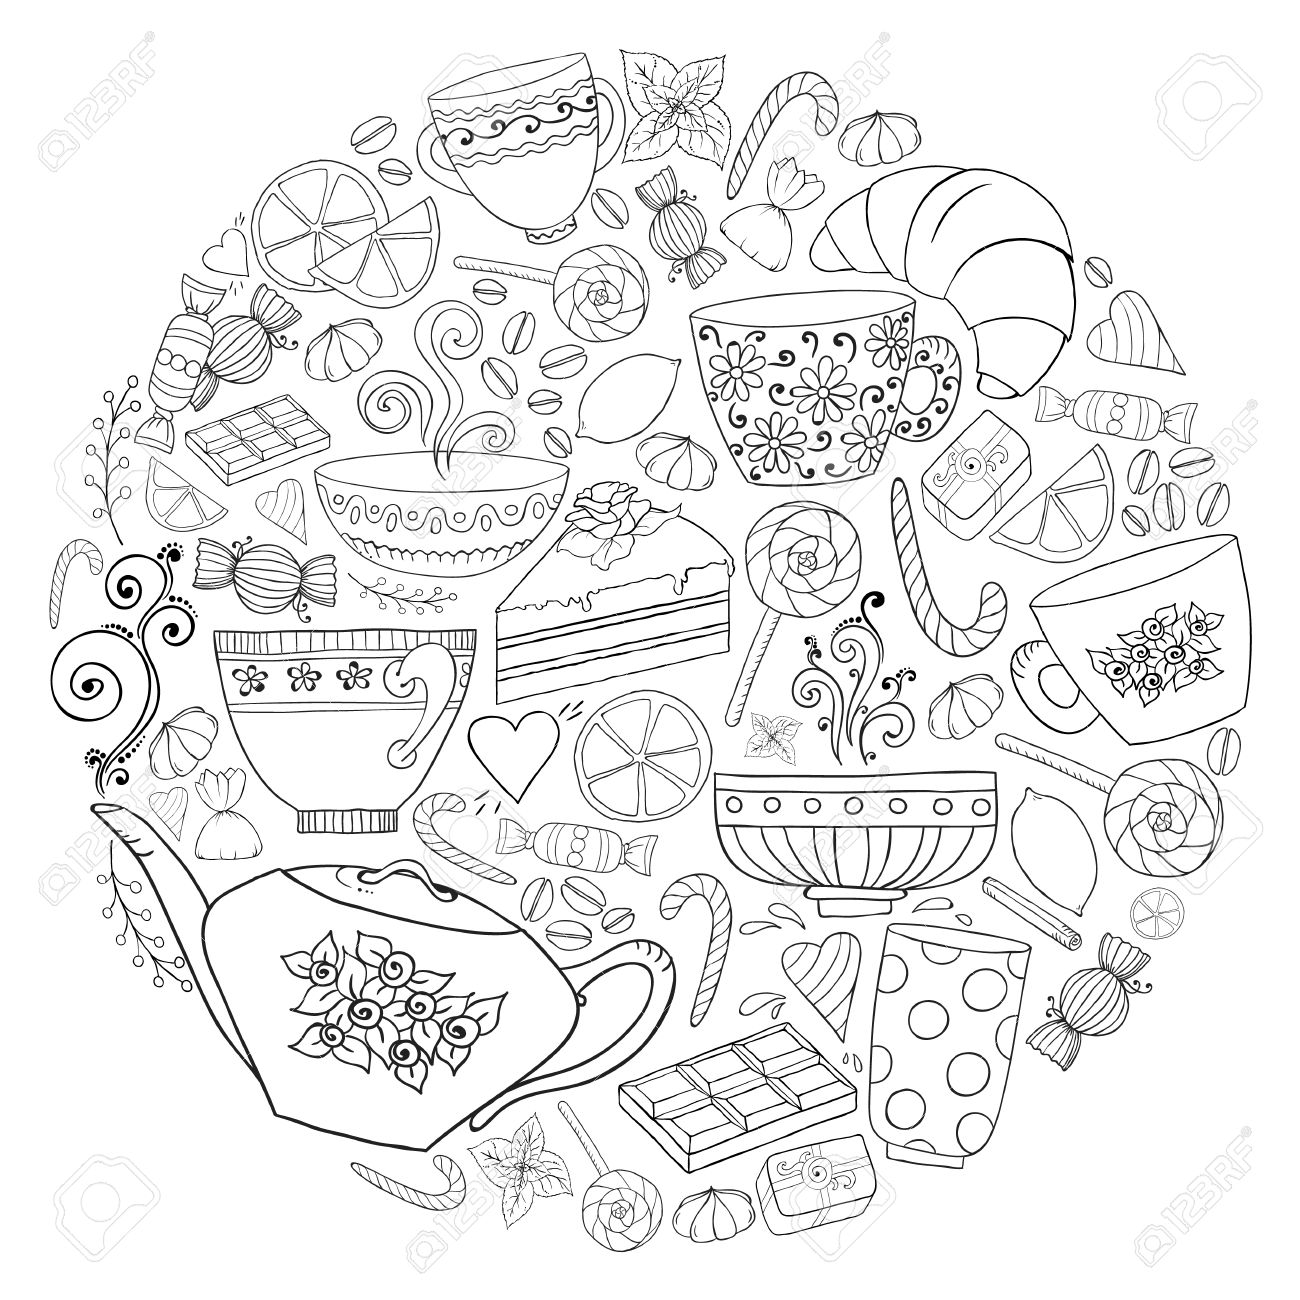 10 656 frame cliparts stock vector and royalty free